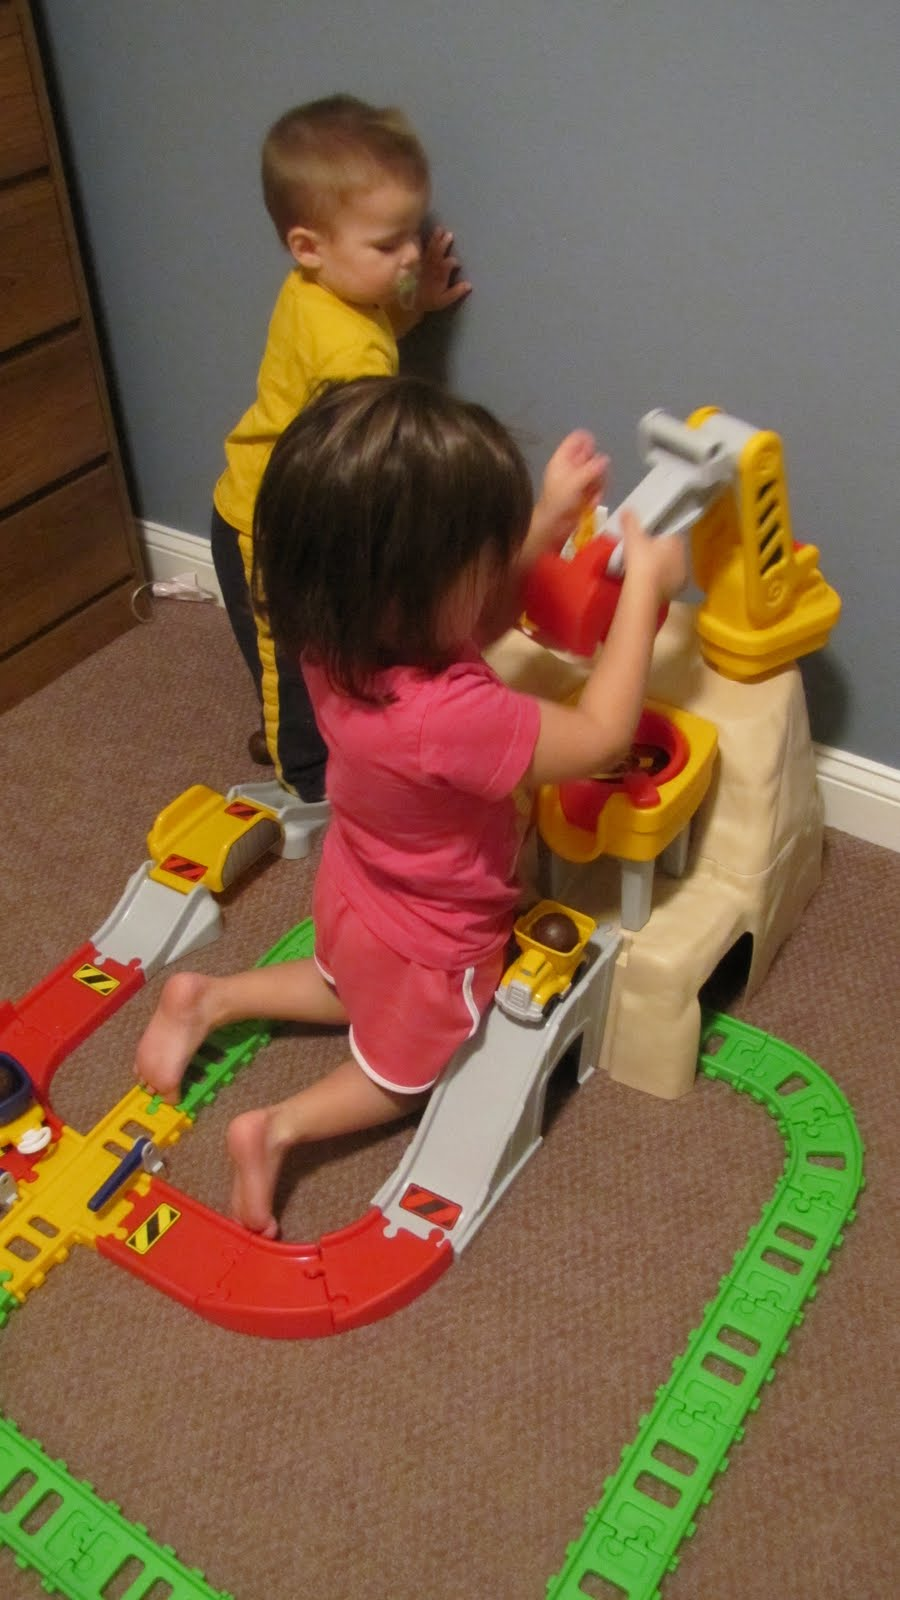 Holiday Gift Guide 2011 #1: Big Adventures Construction Peak Rail n